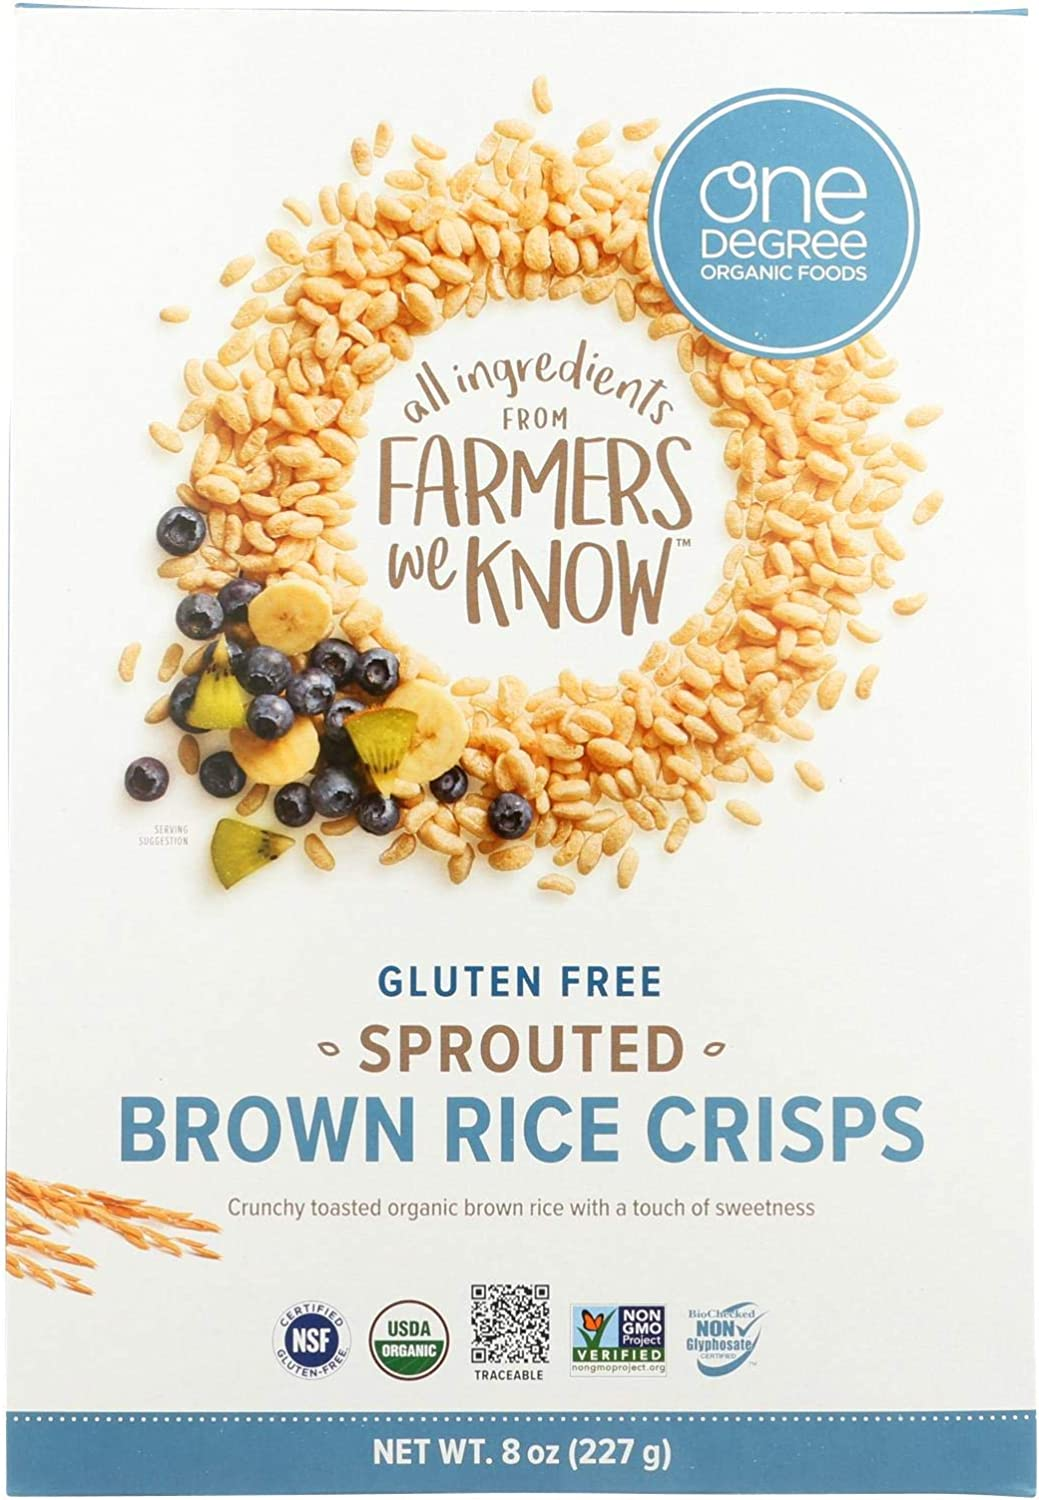 One Degree Organic Foods Sprouted Brown Rice - Crisps Cereal - Case of 6 - 8 oz.